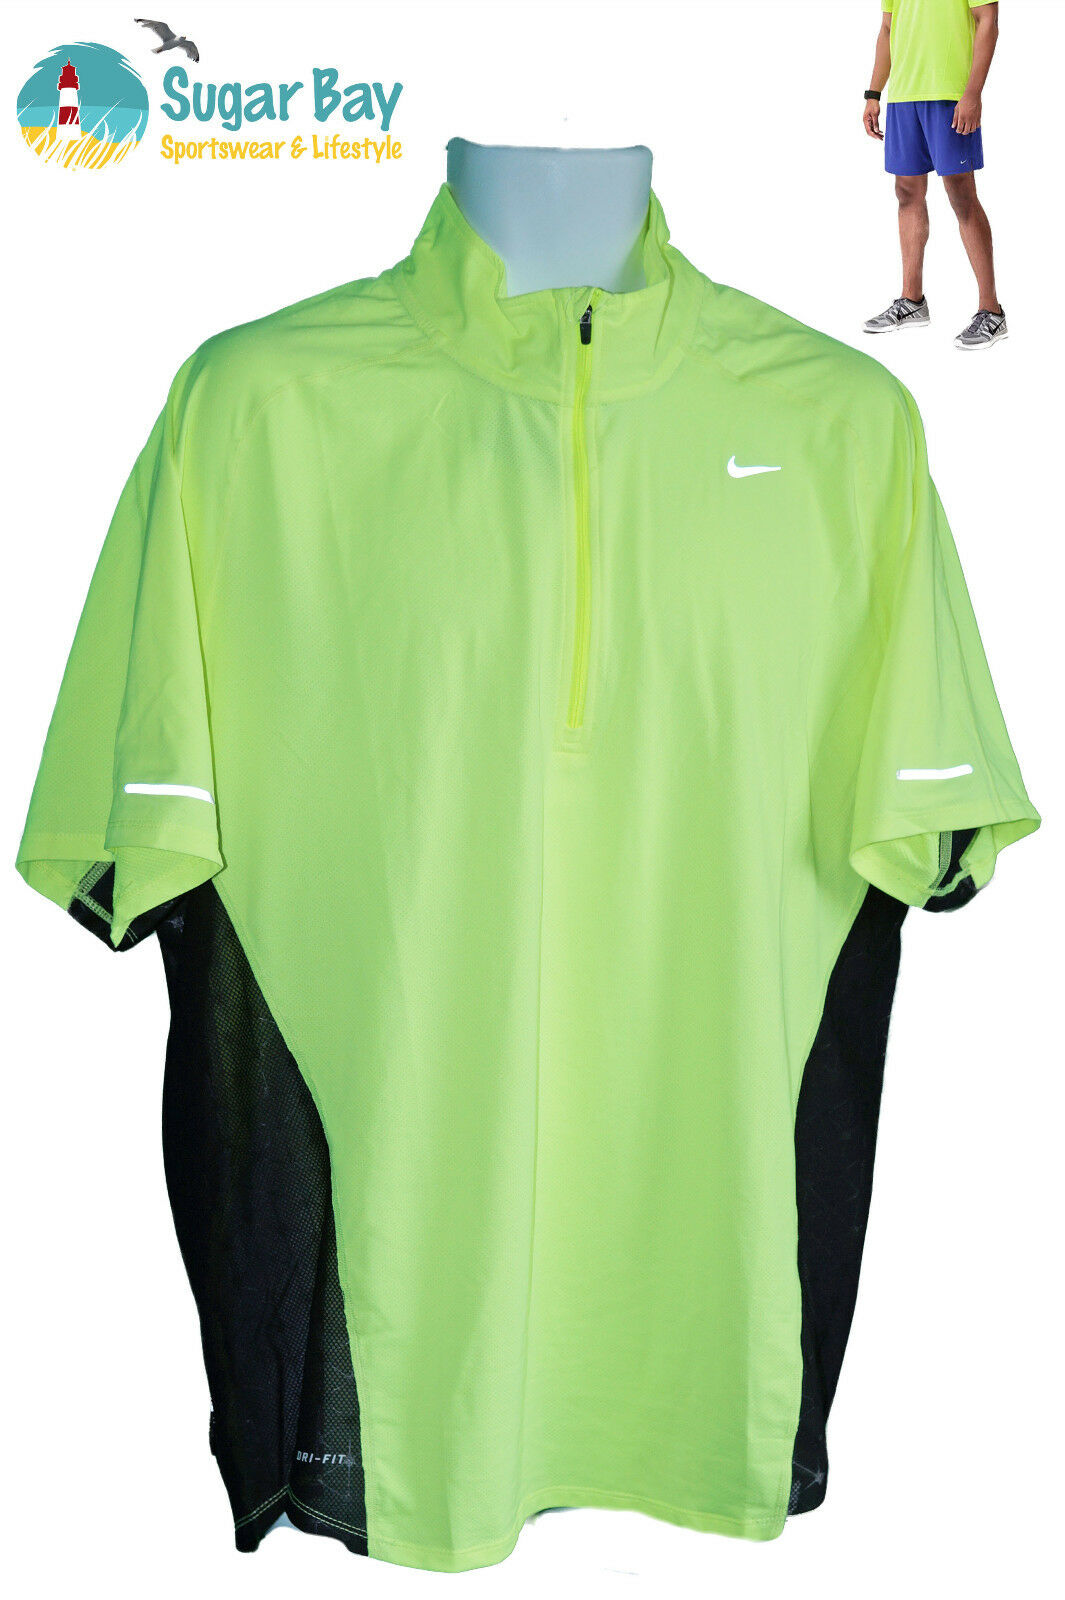 NIKE RUNNING HERREN DRI-FIT STAY COOL belüftet Signalfarbe Reflektion Oberteil